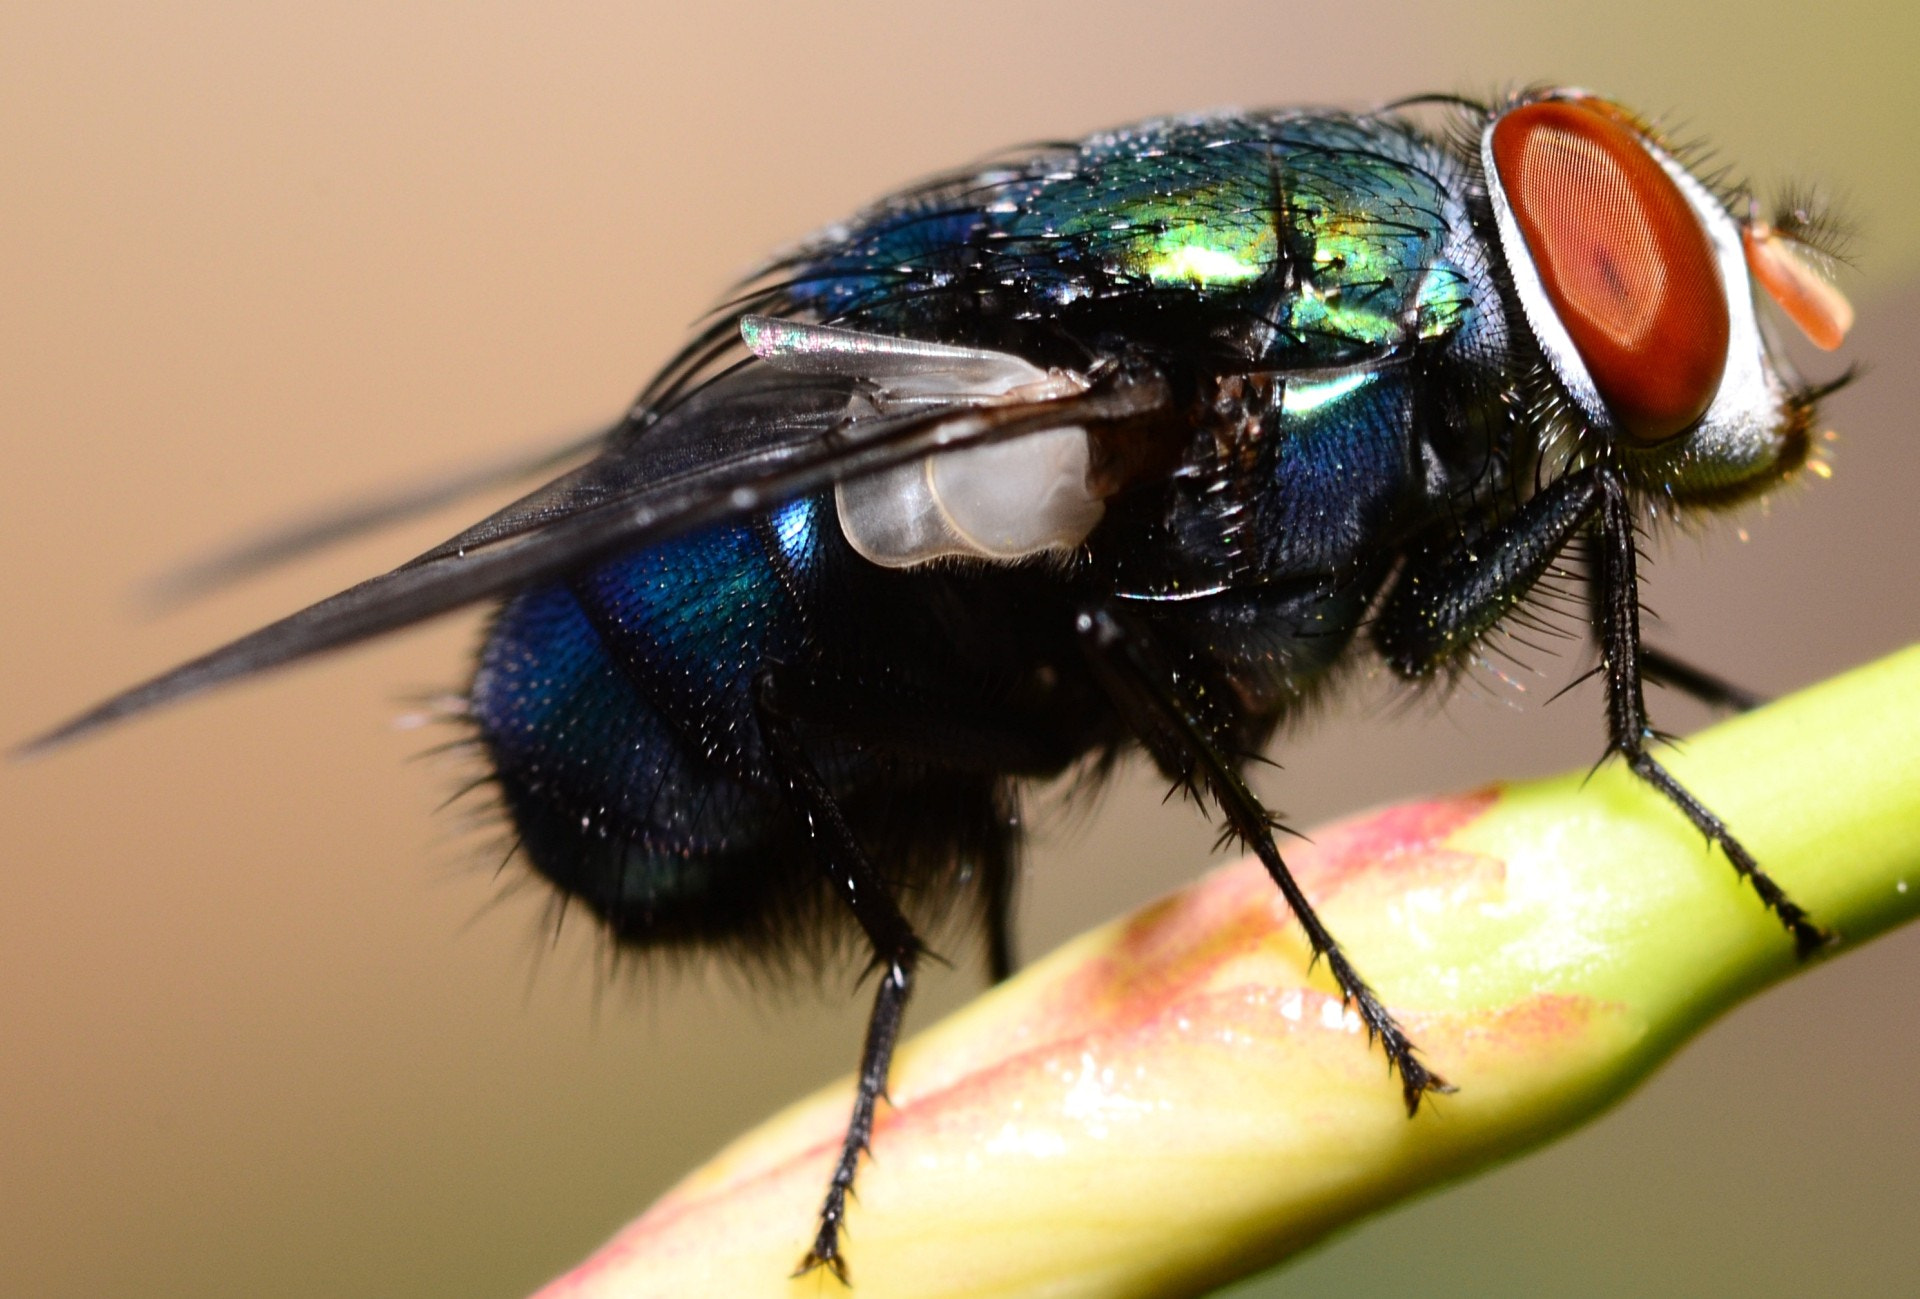 Photograph Big Fly by Sujoy Packrasy on 500px